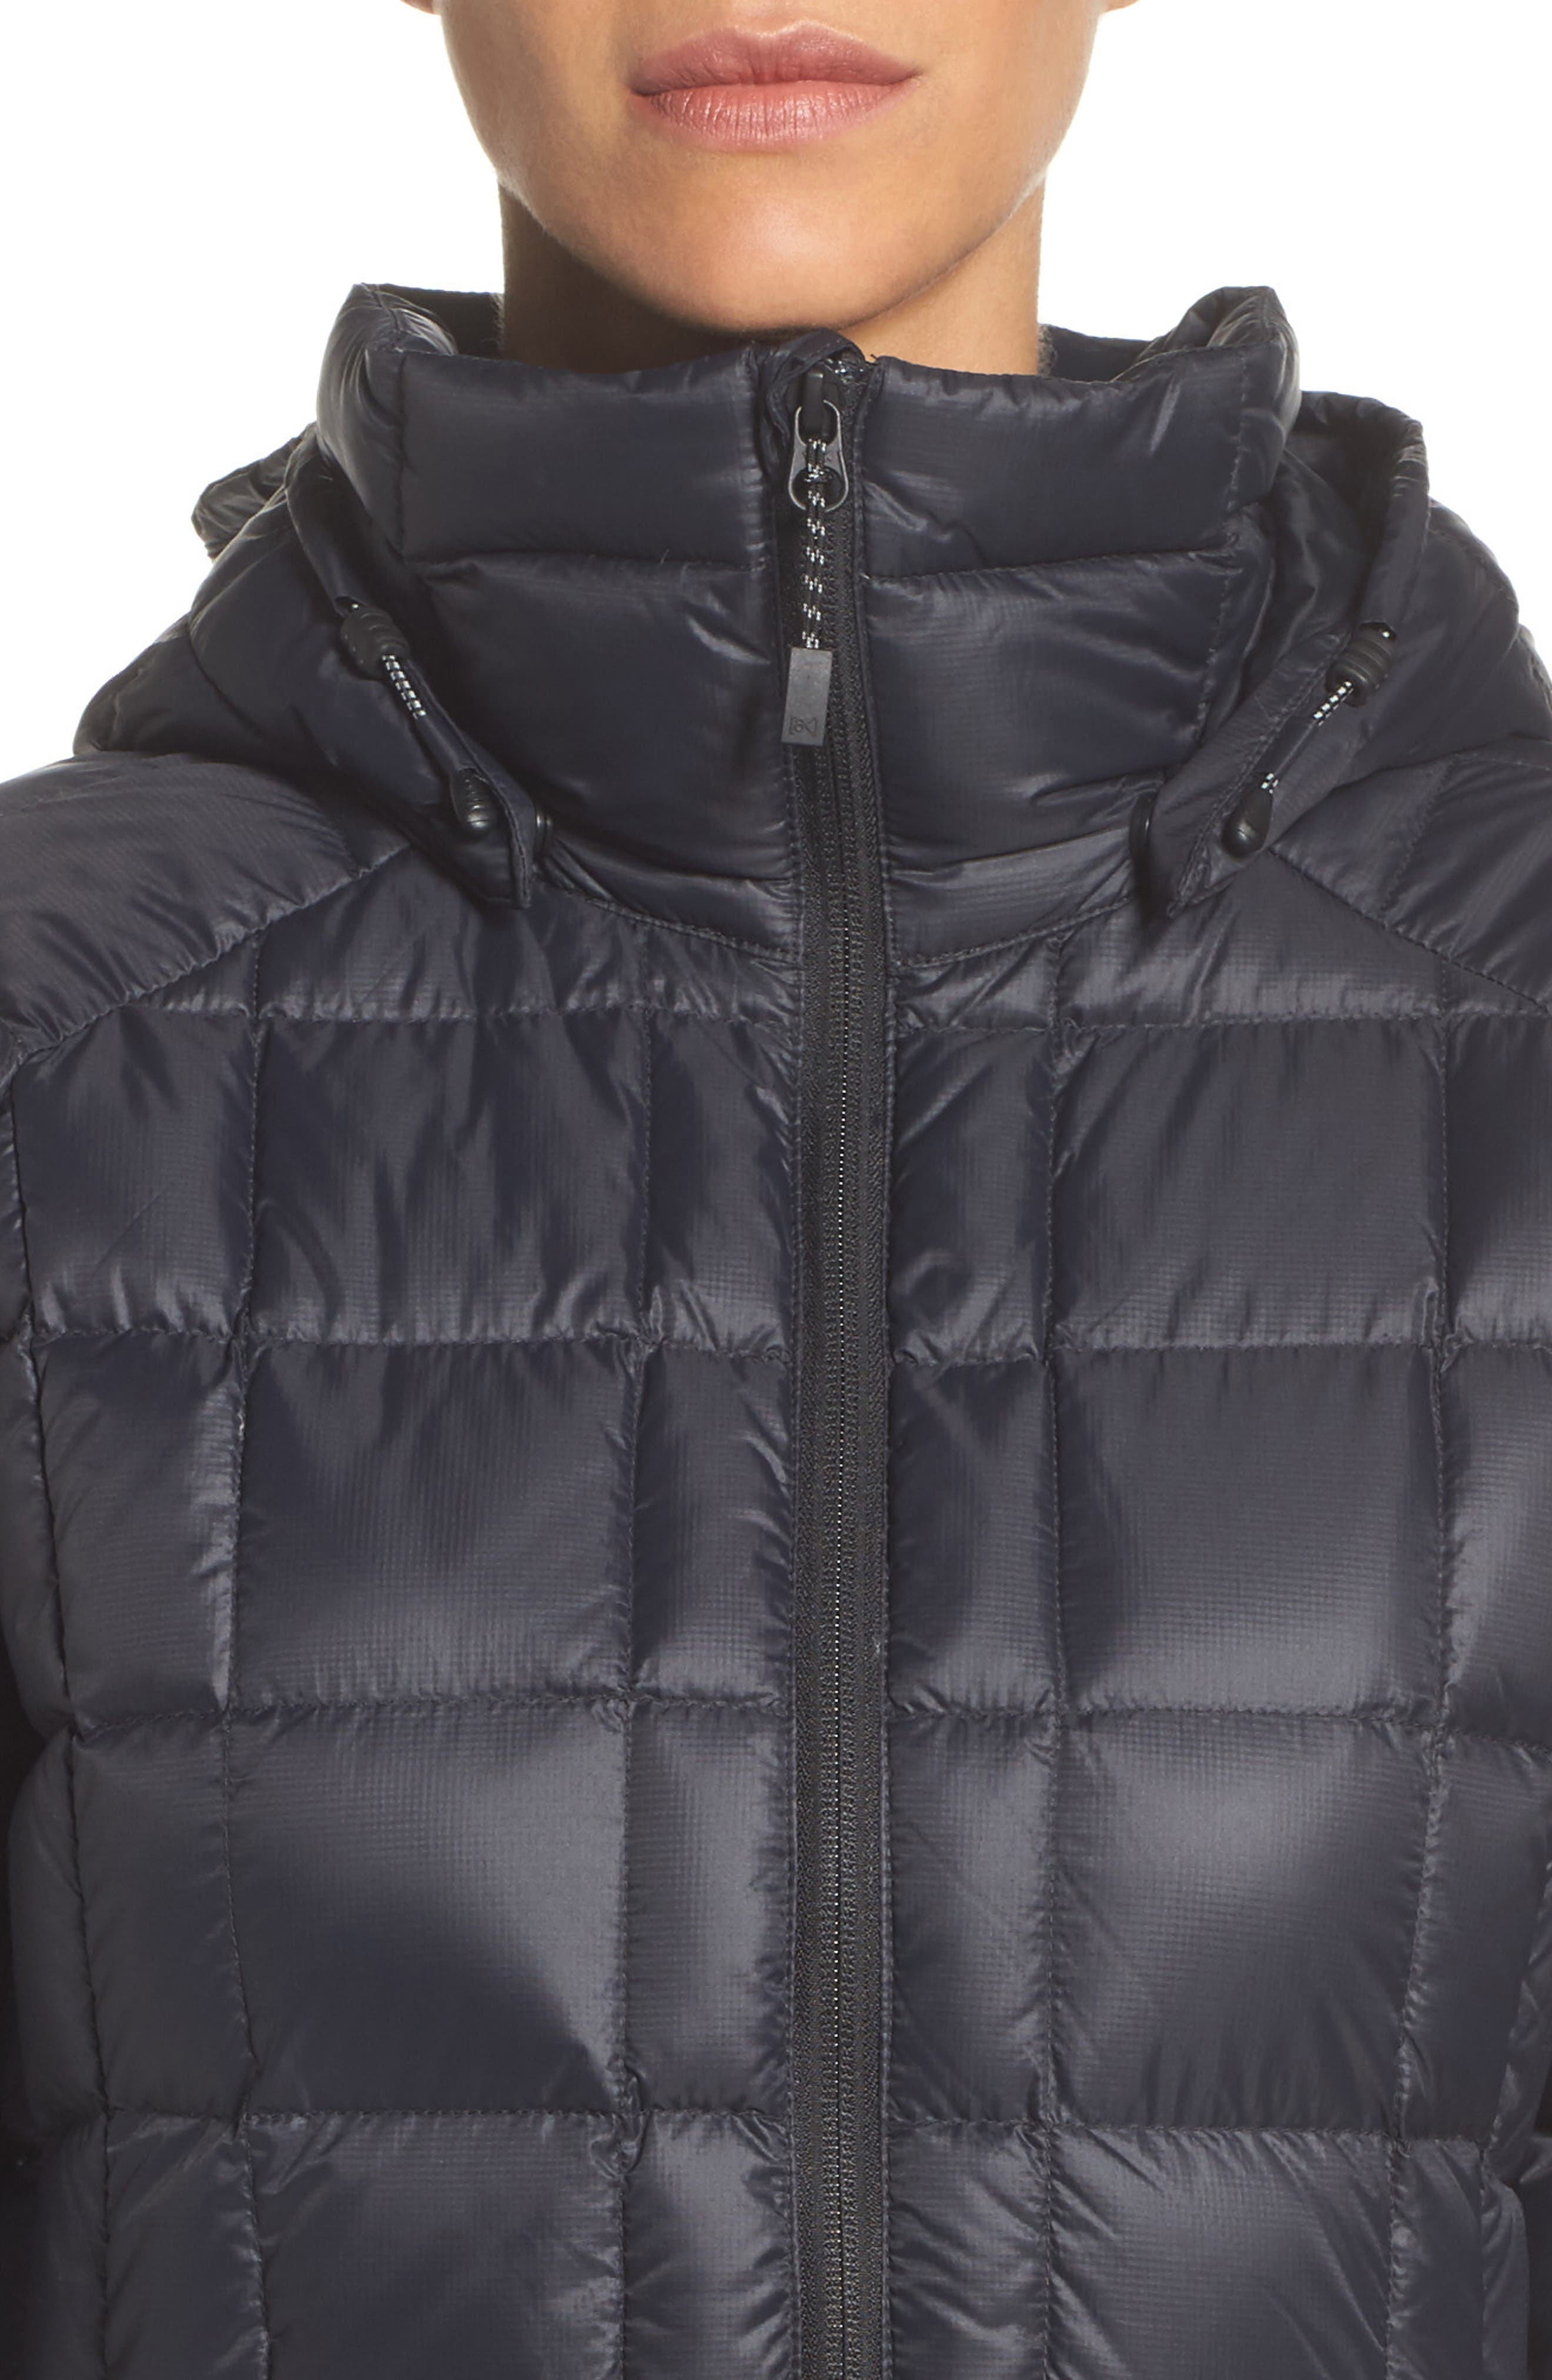 AK Baker Waterproof Quilted Down Insulator Jacket with Removable Hood,                             Alternate thumbnail 4, color,                             True Black